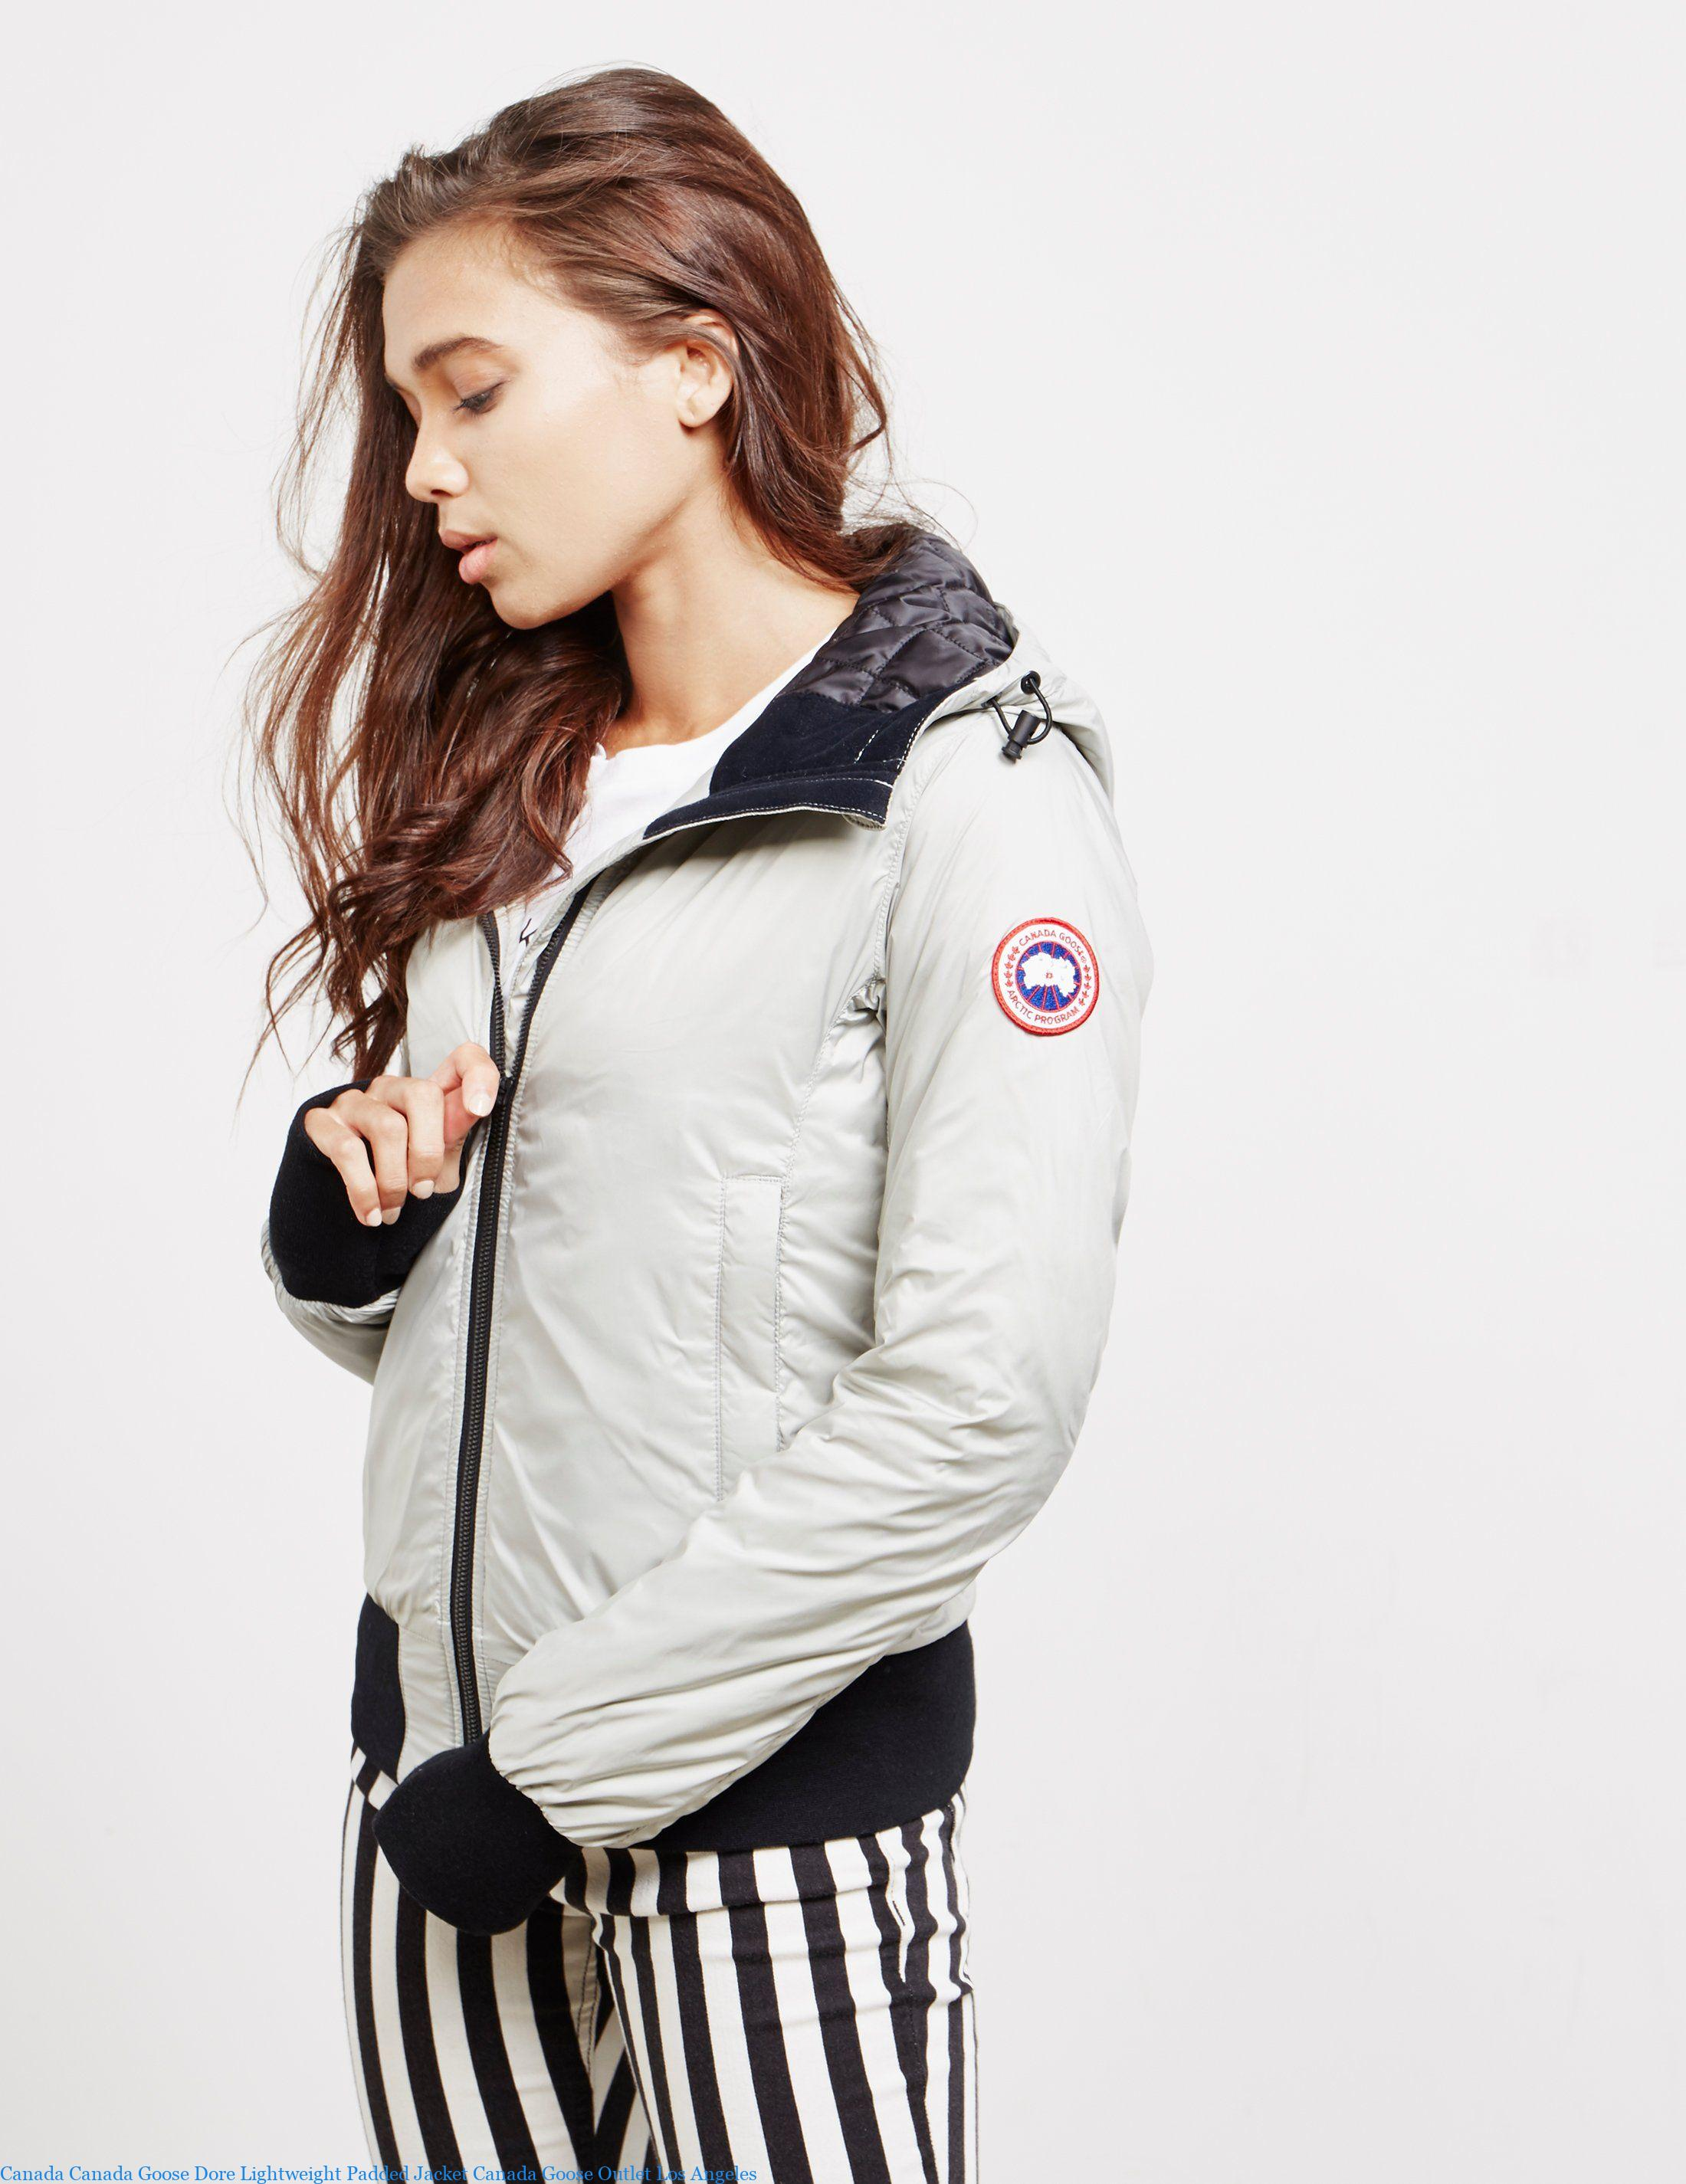 dfeeb0cb3a1d14 Canada Canada Goose Dore Lightweight Padded Jacket Canada Goose Outlet Los  Angeles – 2019 Sale Cheap Canada Goose Outlet UK Black Friday